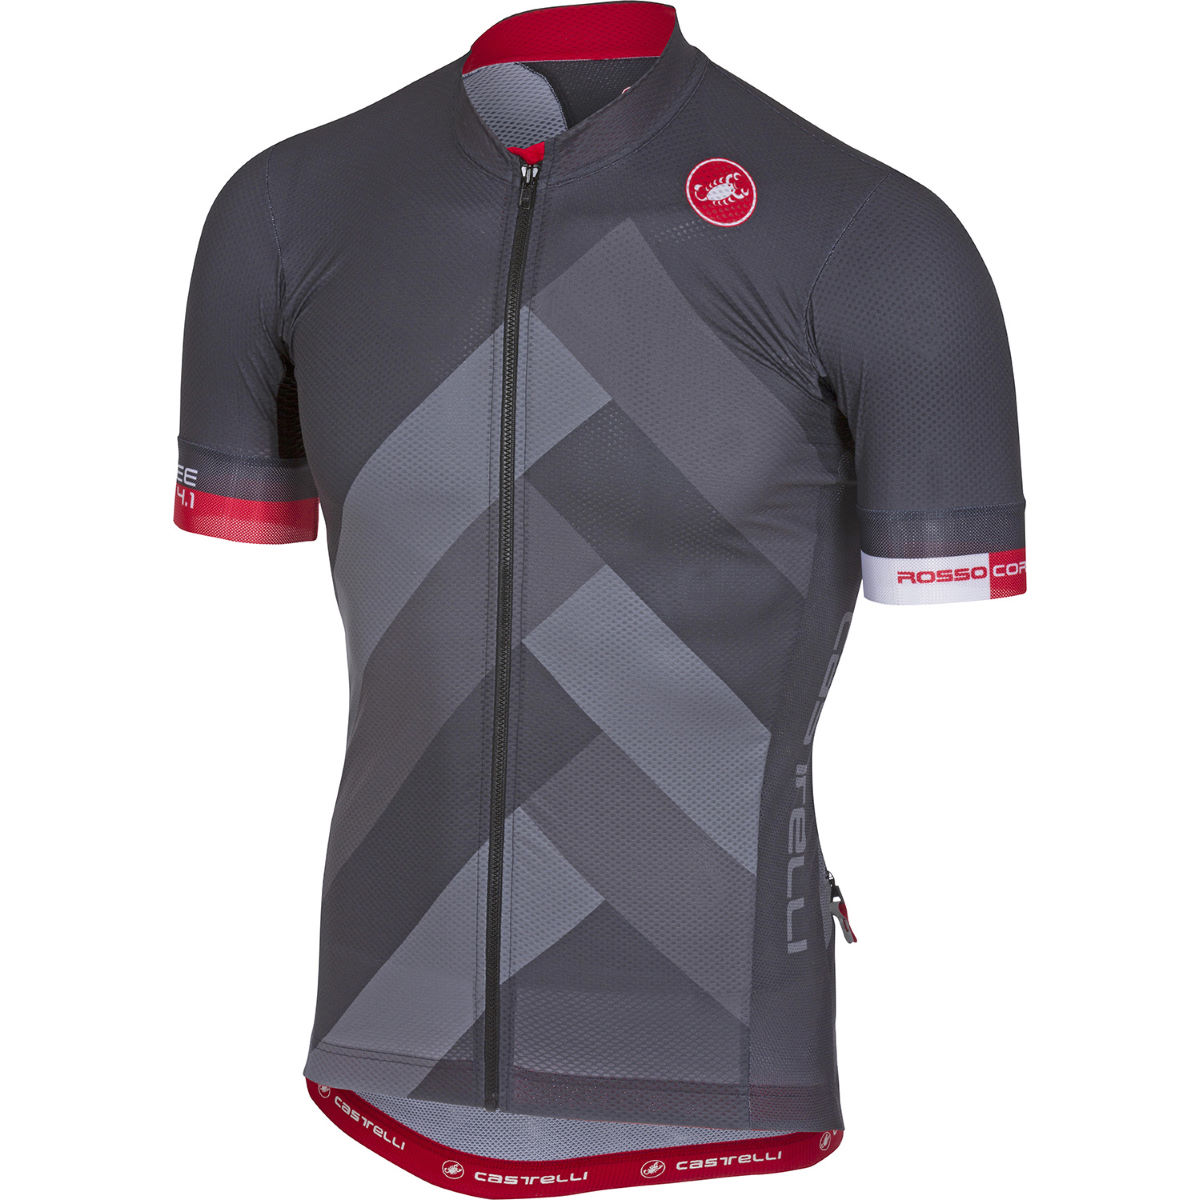 Maillot Castelli Free AR 4.1 - S Anthracite